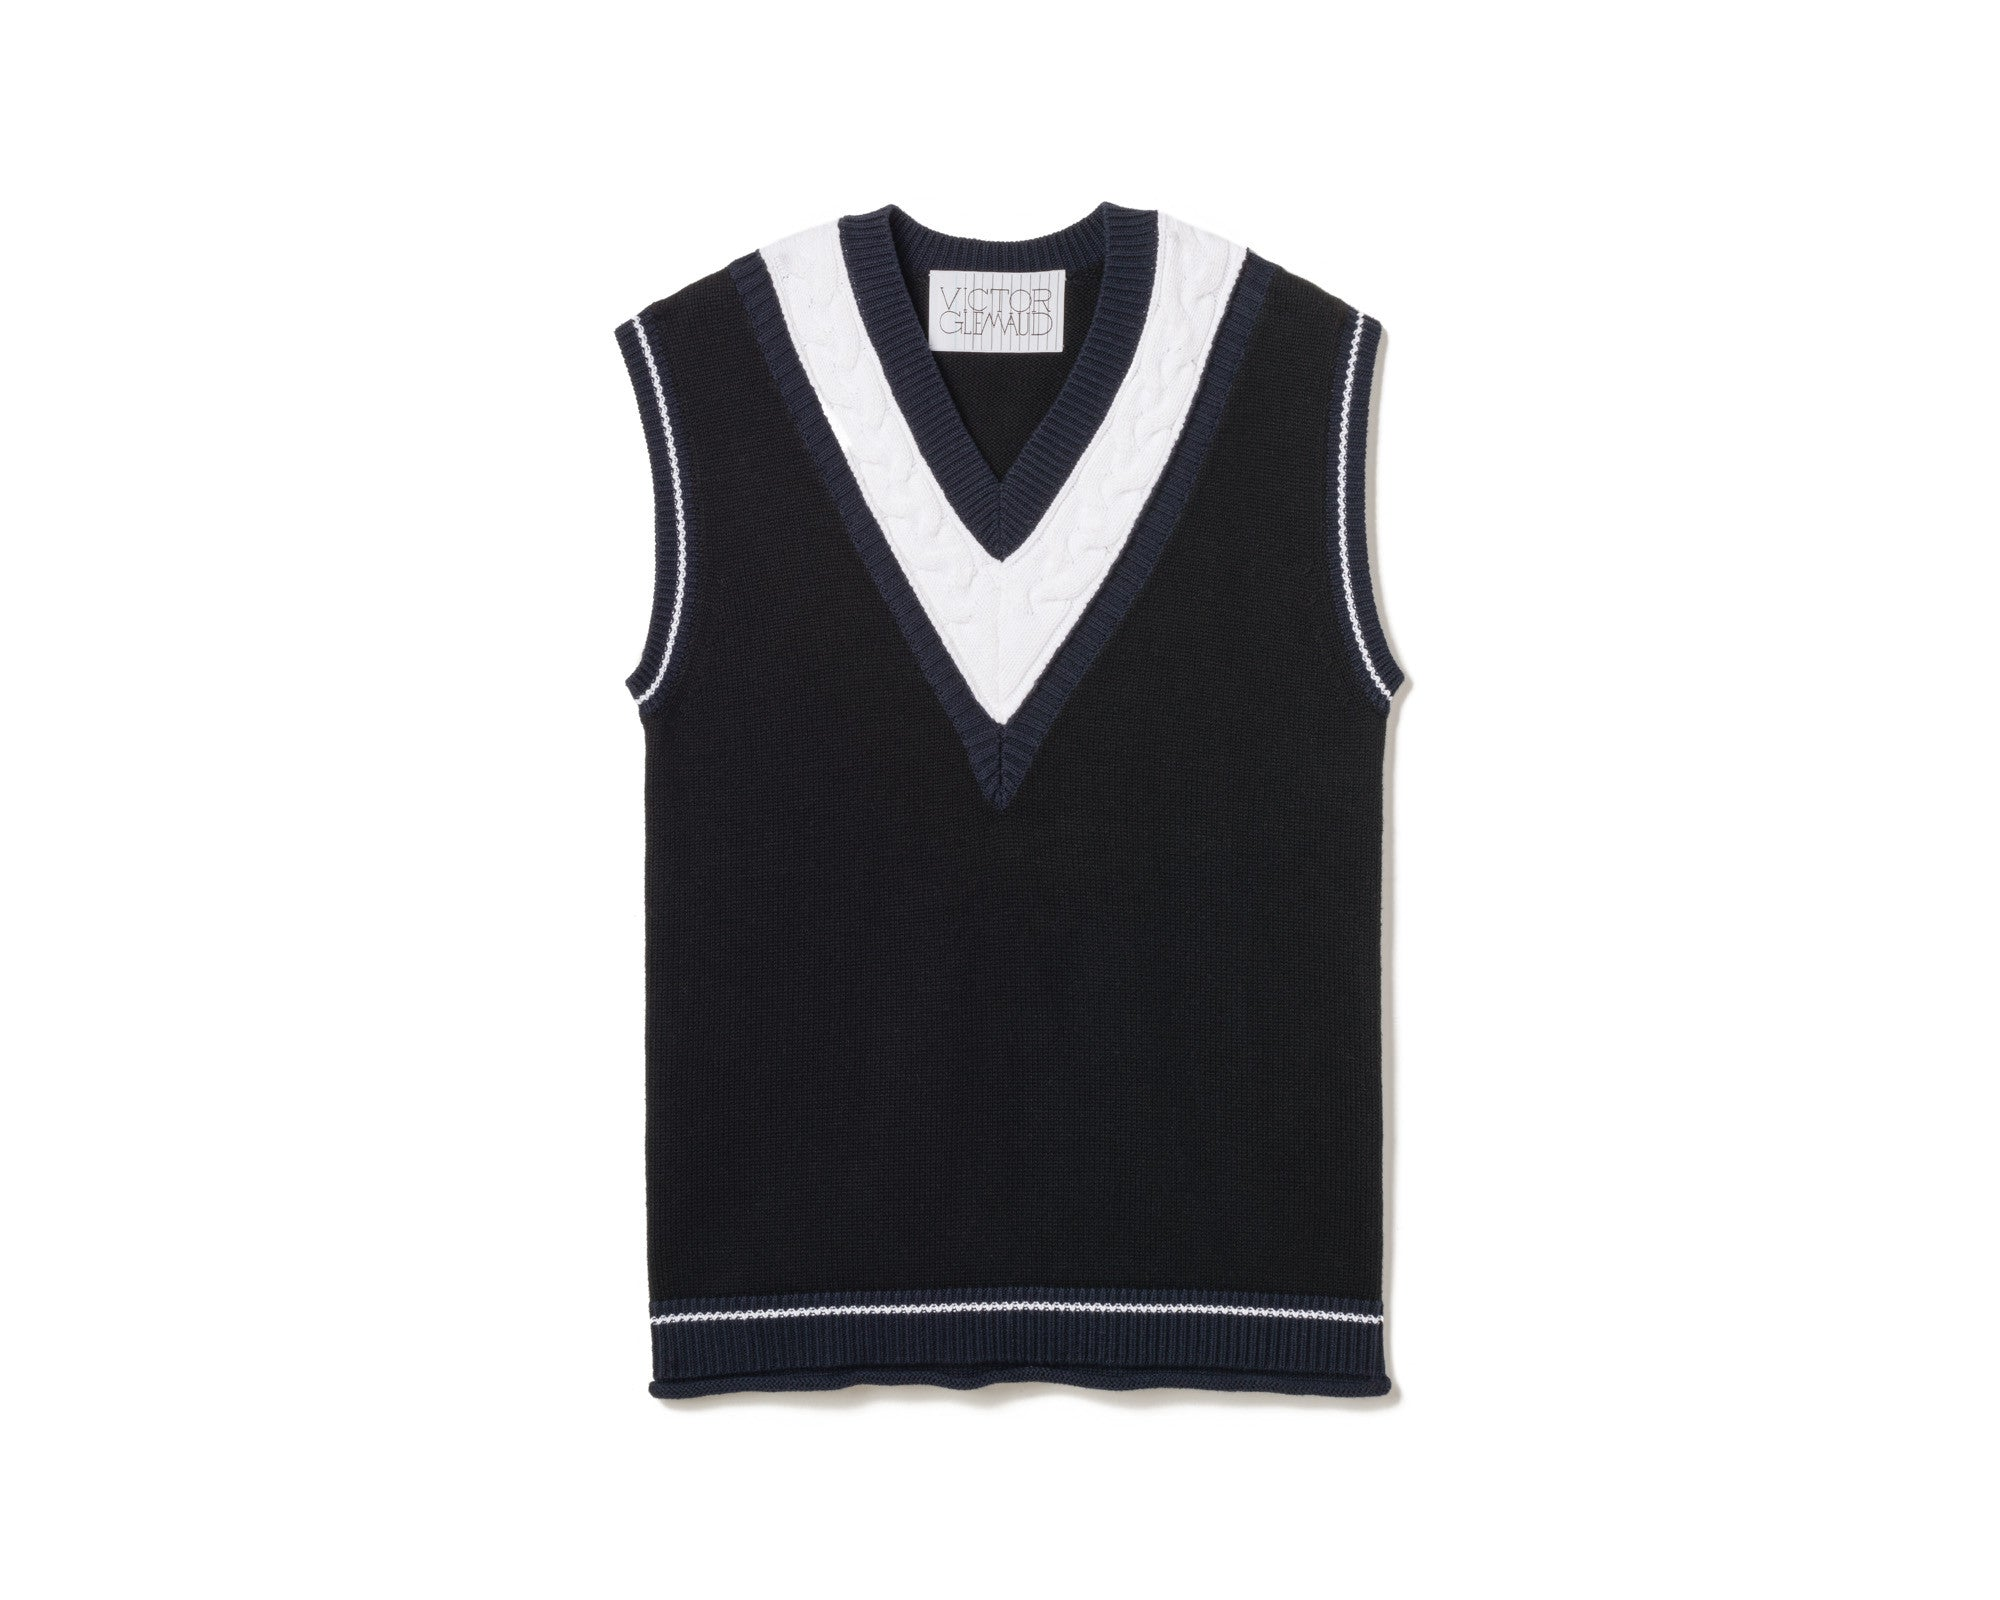 CABLE-KNIT PANELED VEST – NAVY